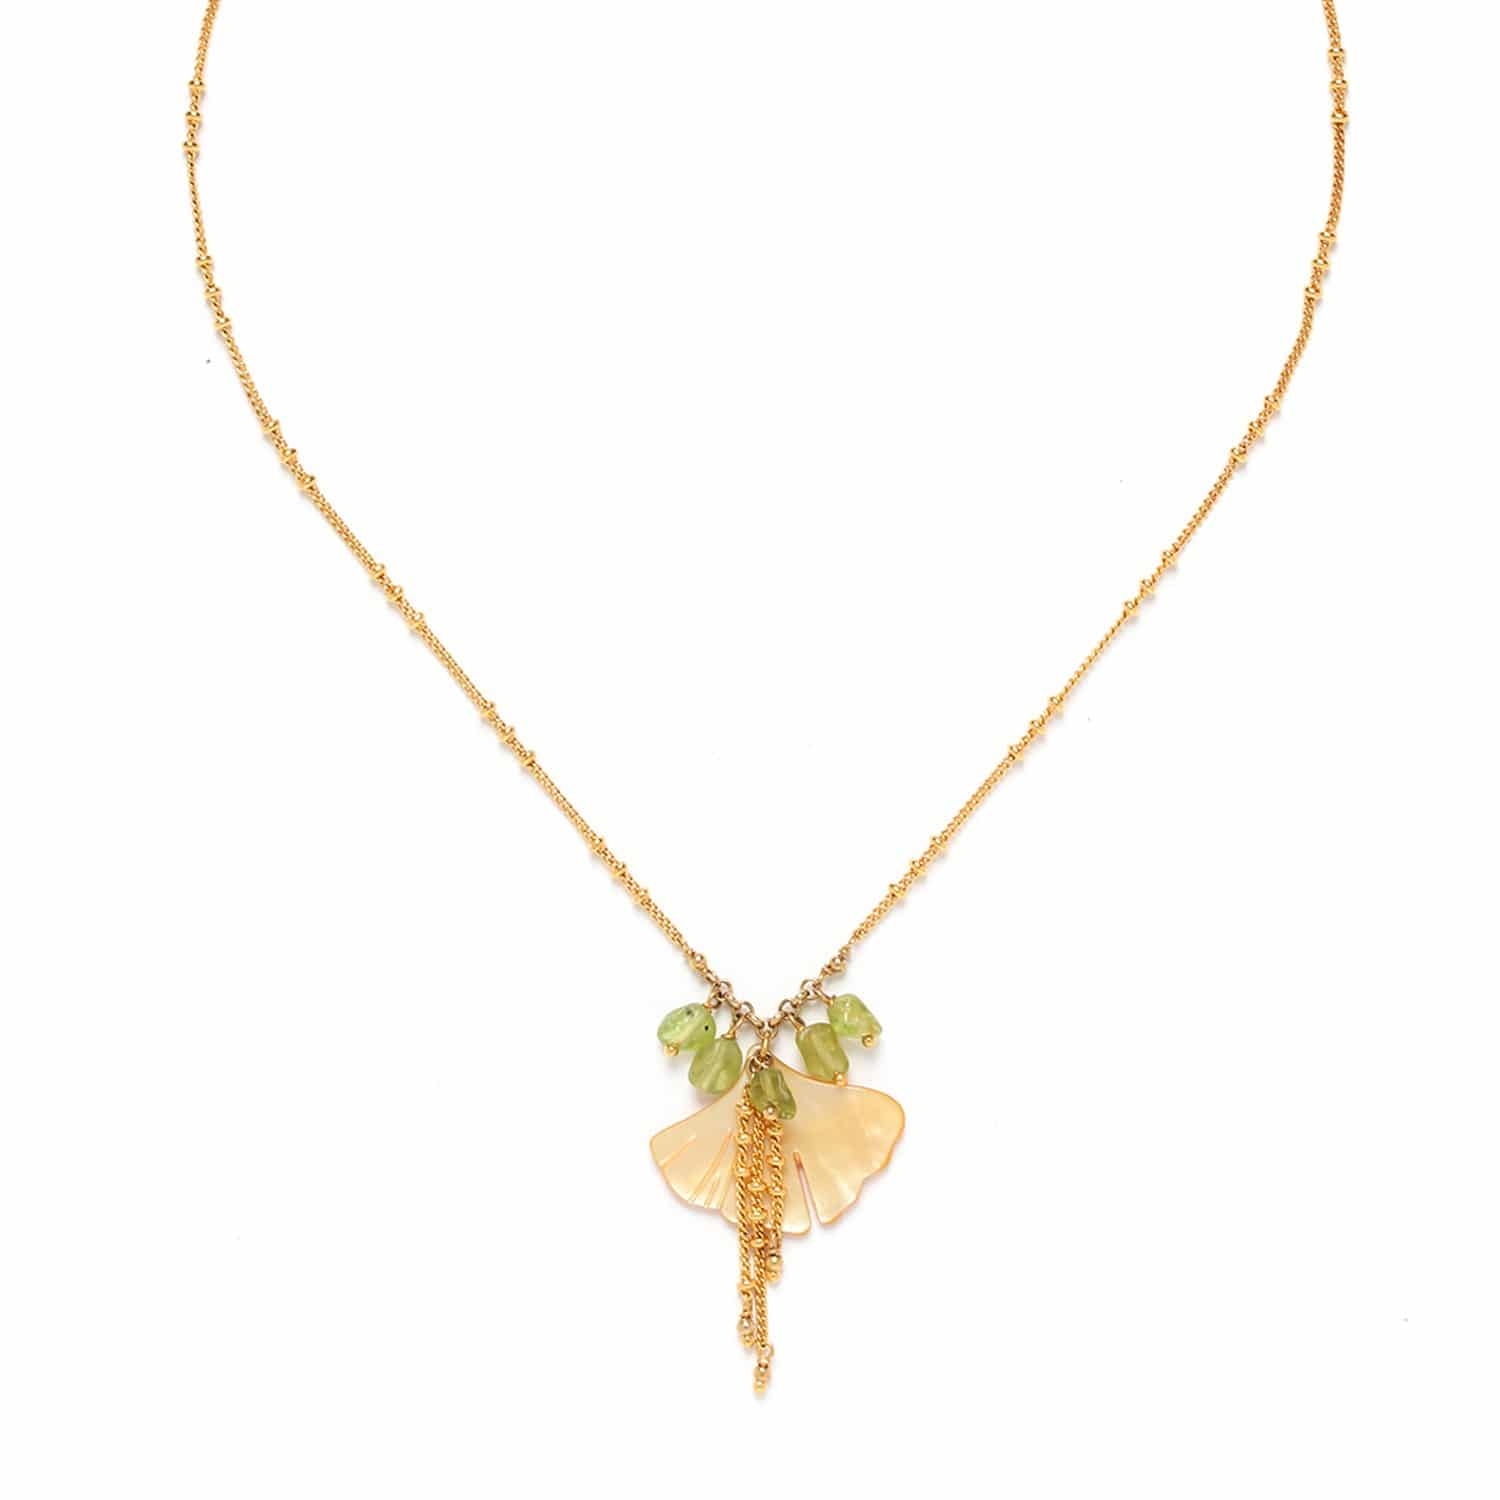 GINKGO collier petite feuille